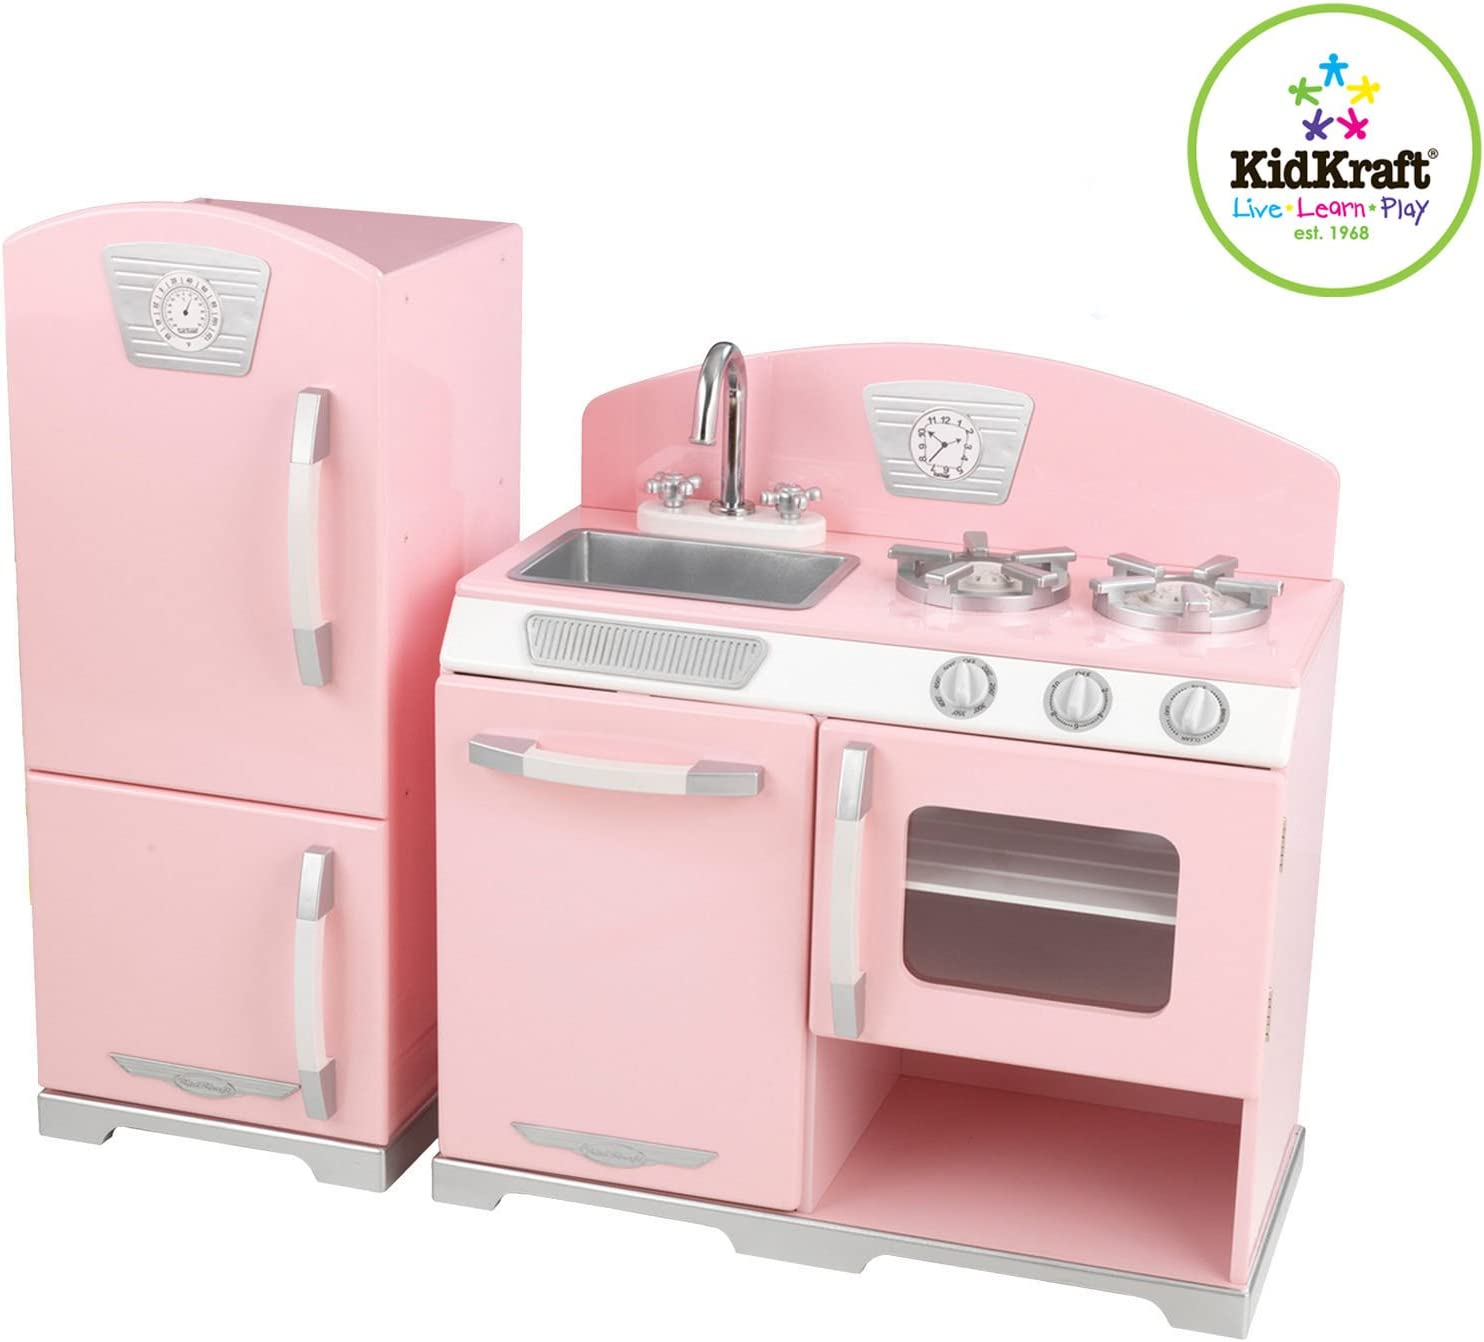 Amazon.com: Kidkraft Retro Kitchen and Refrigerator in Pink ...